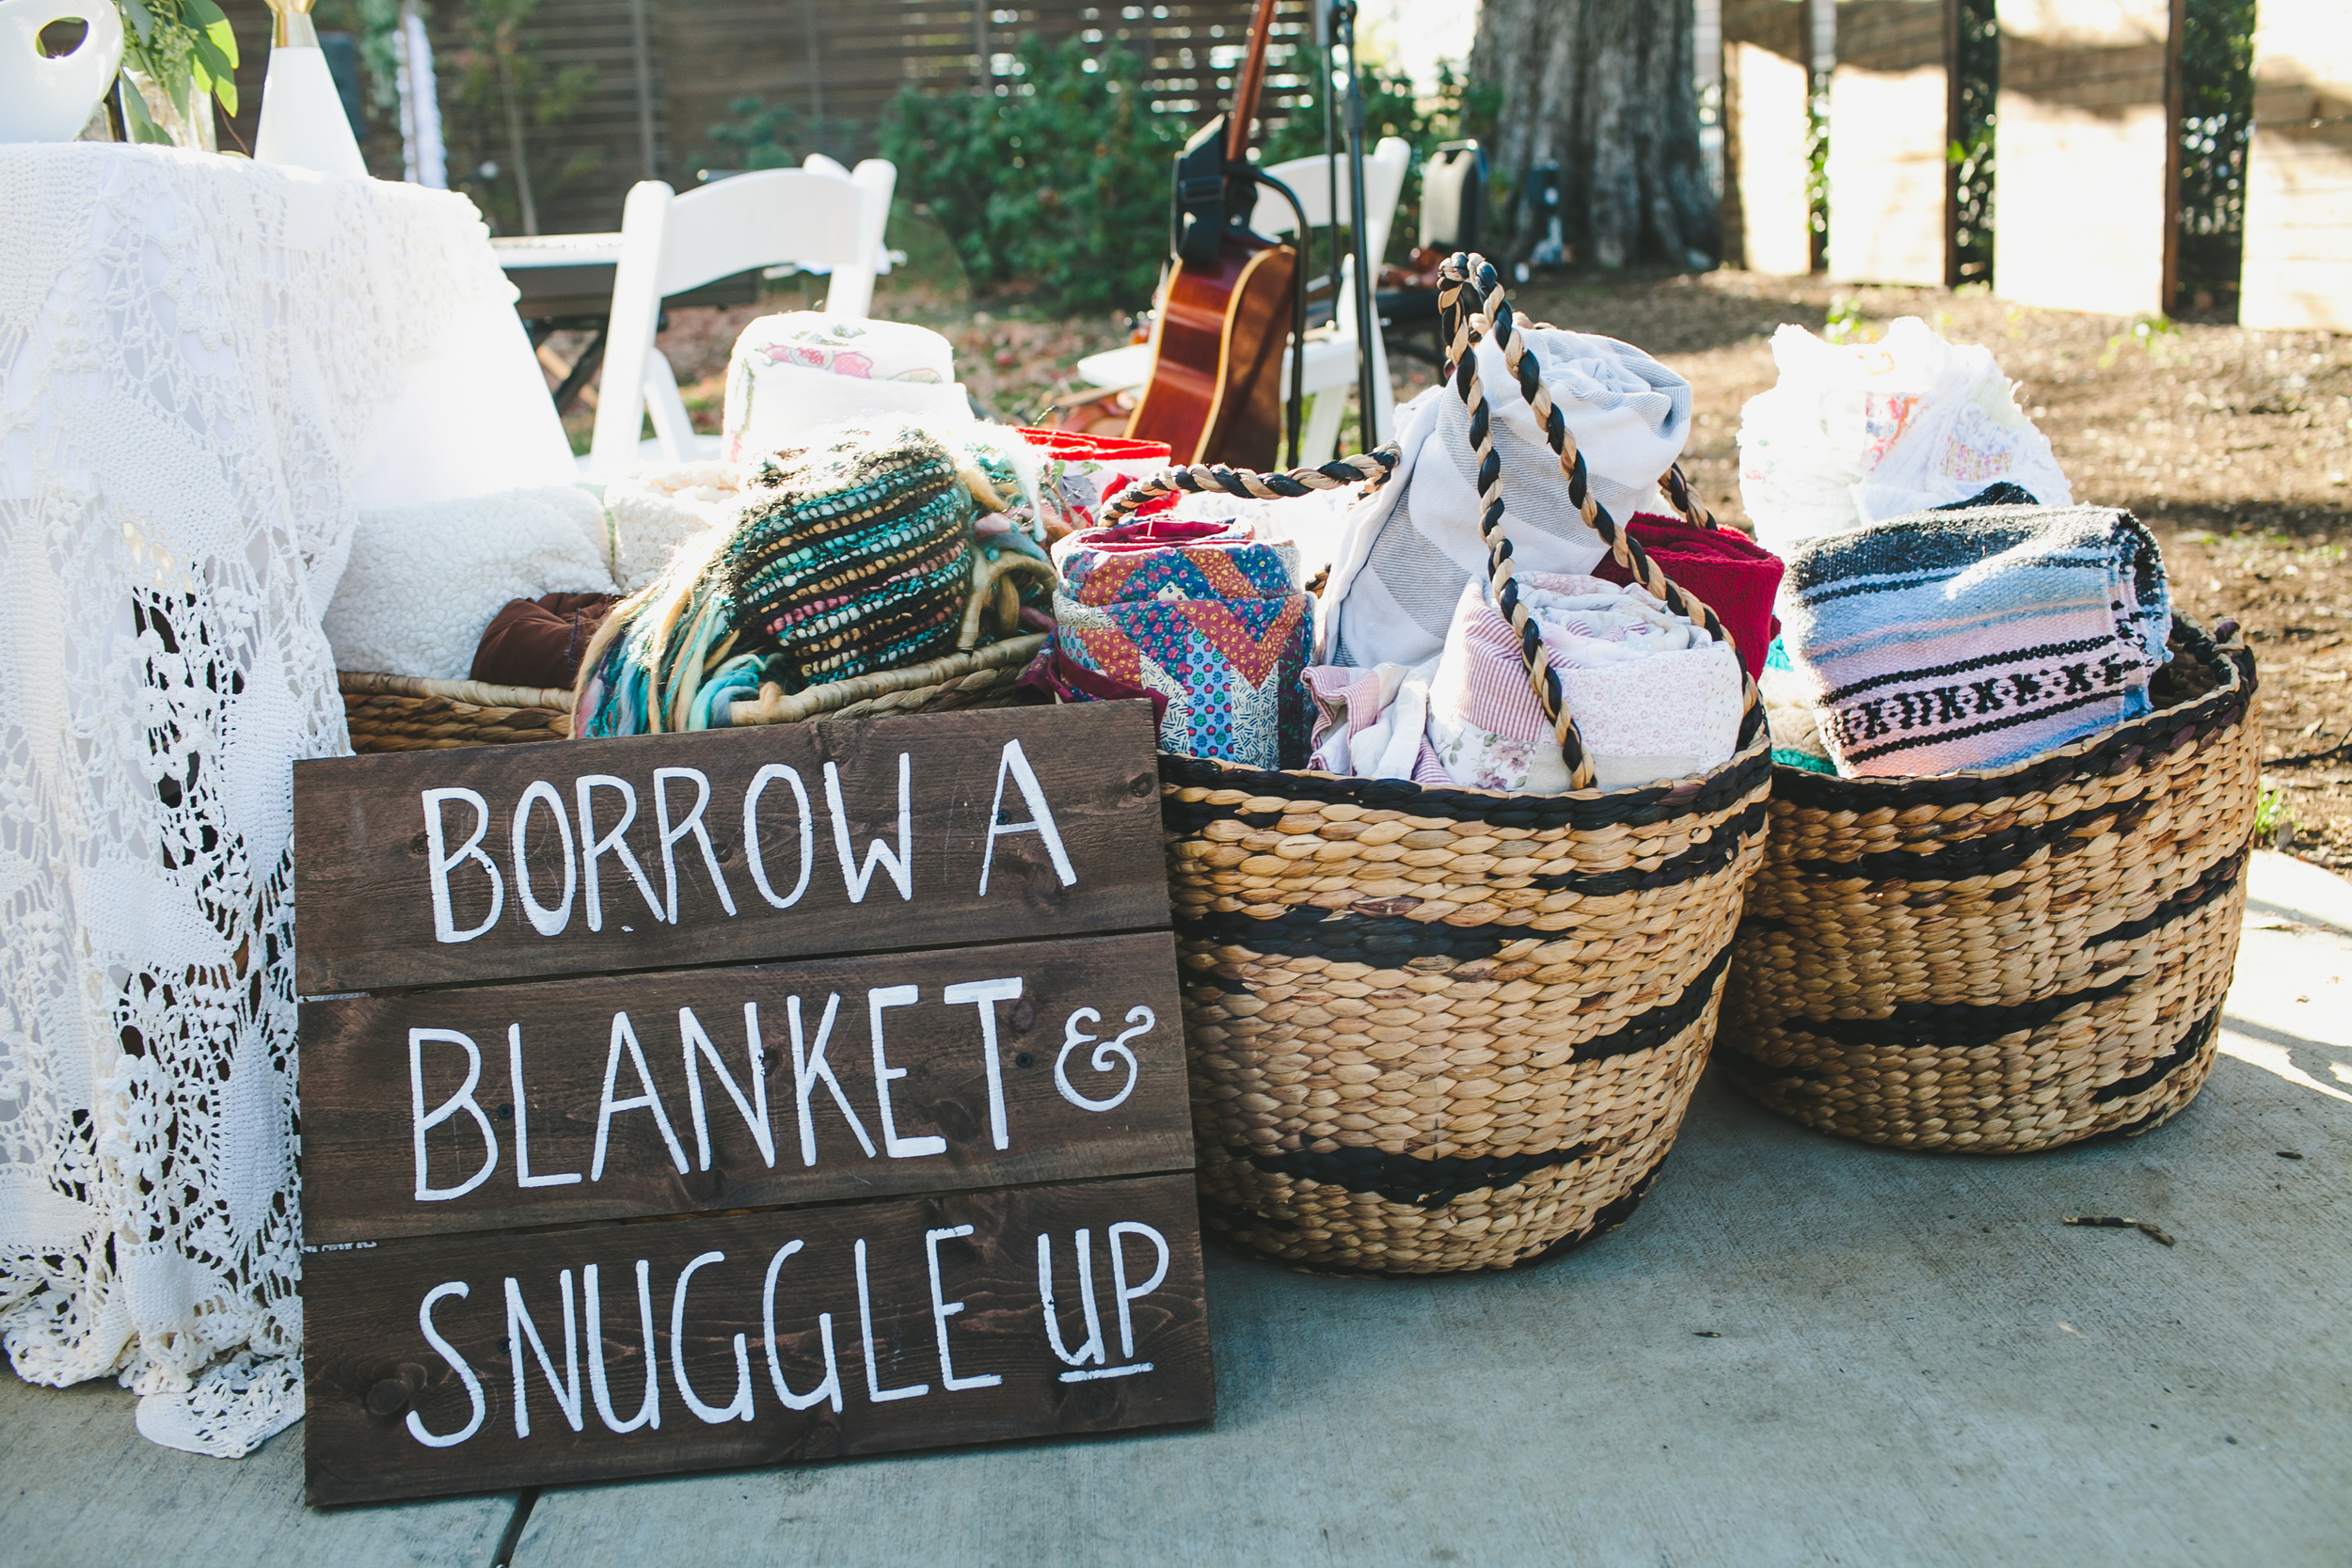 Kneale_Wedding_Blanket_Sign